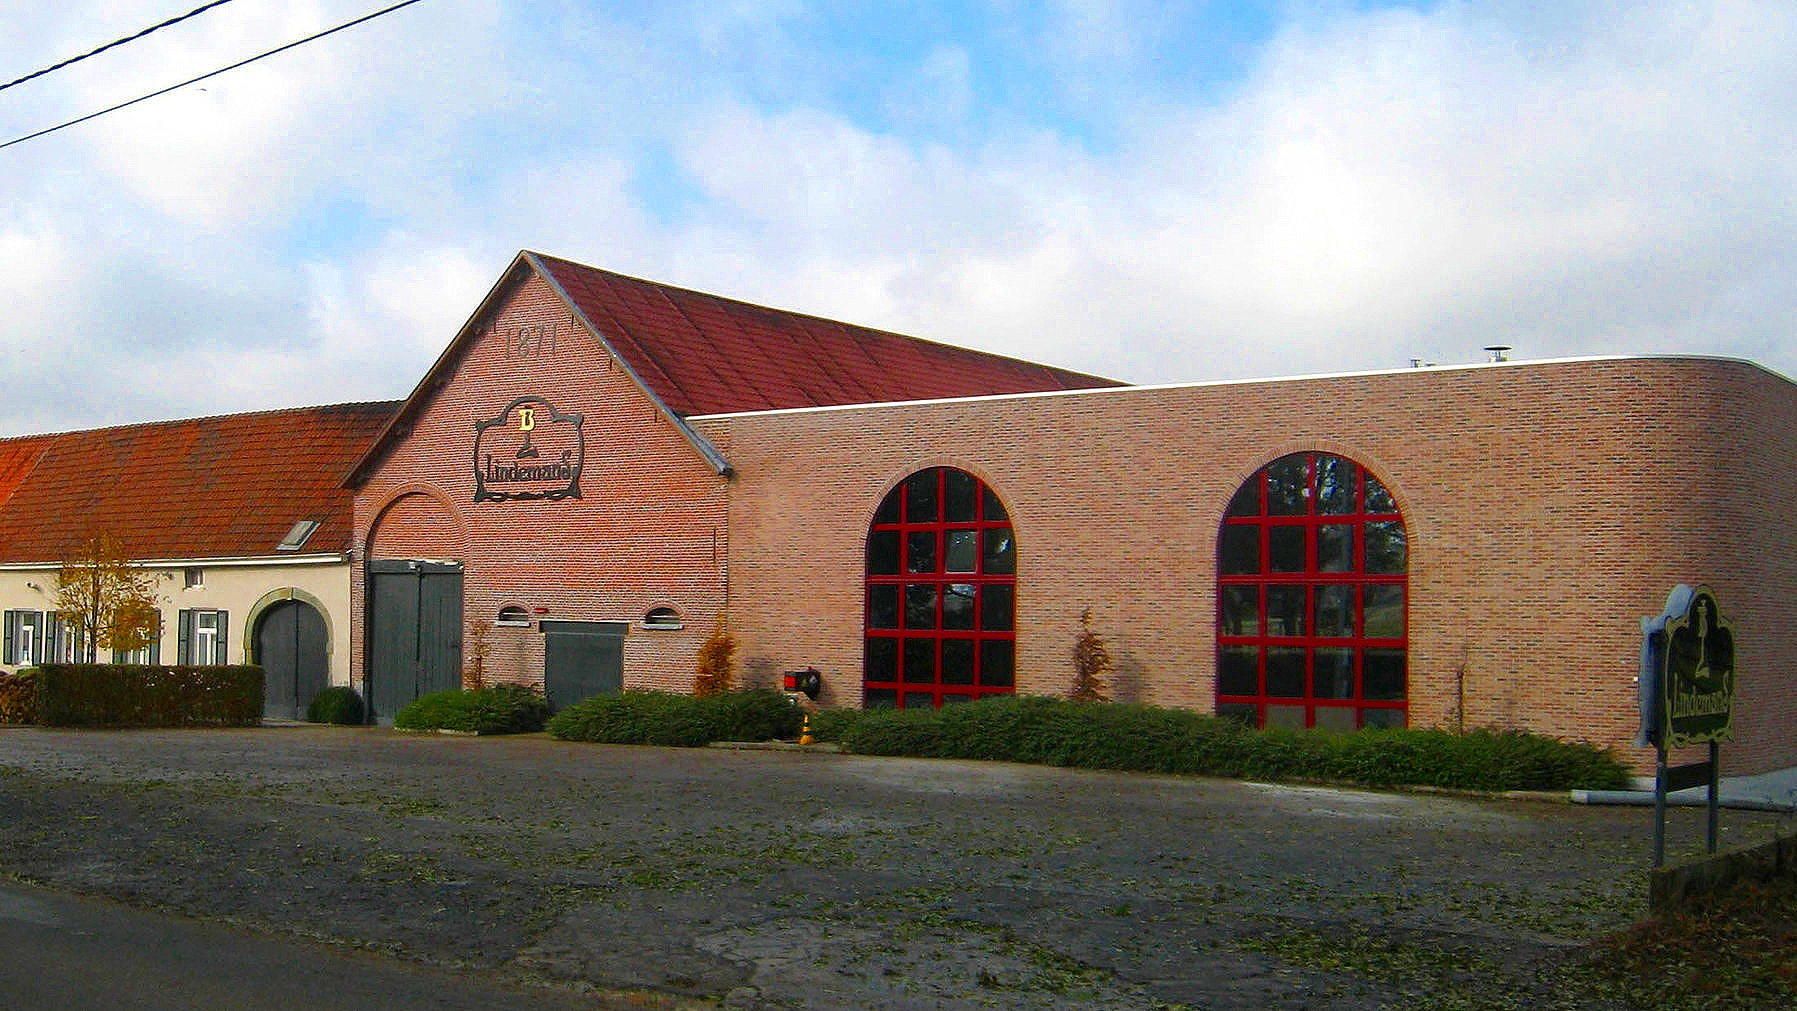 Lindemans brewery in Vlezenbeek, Belgium